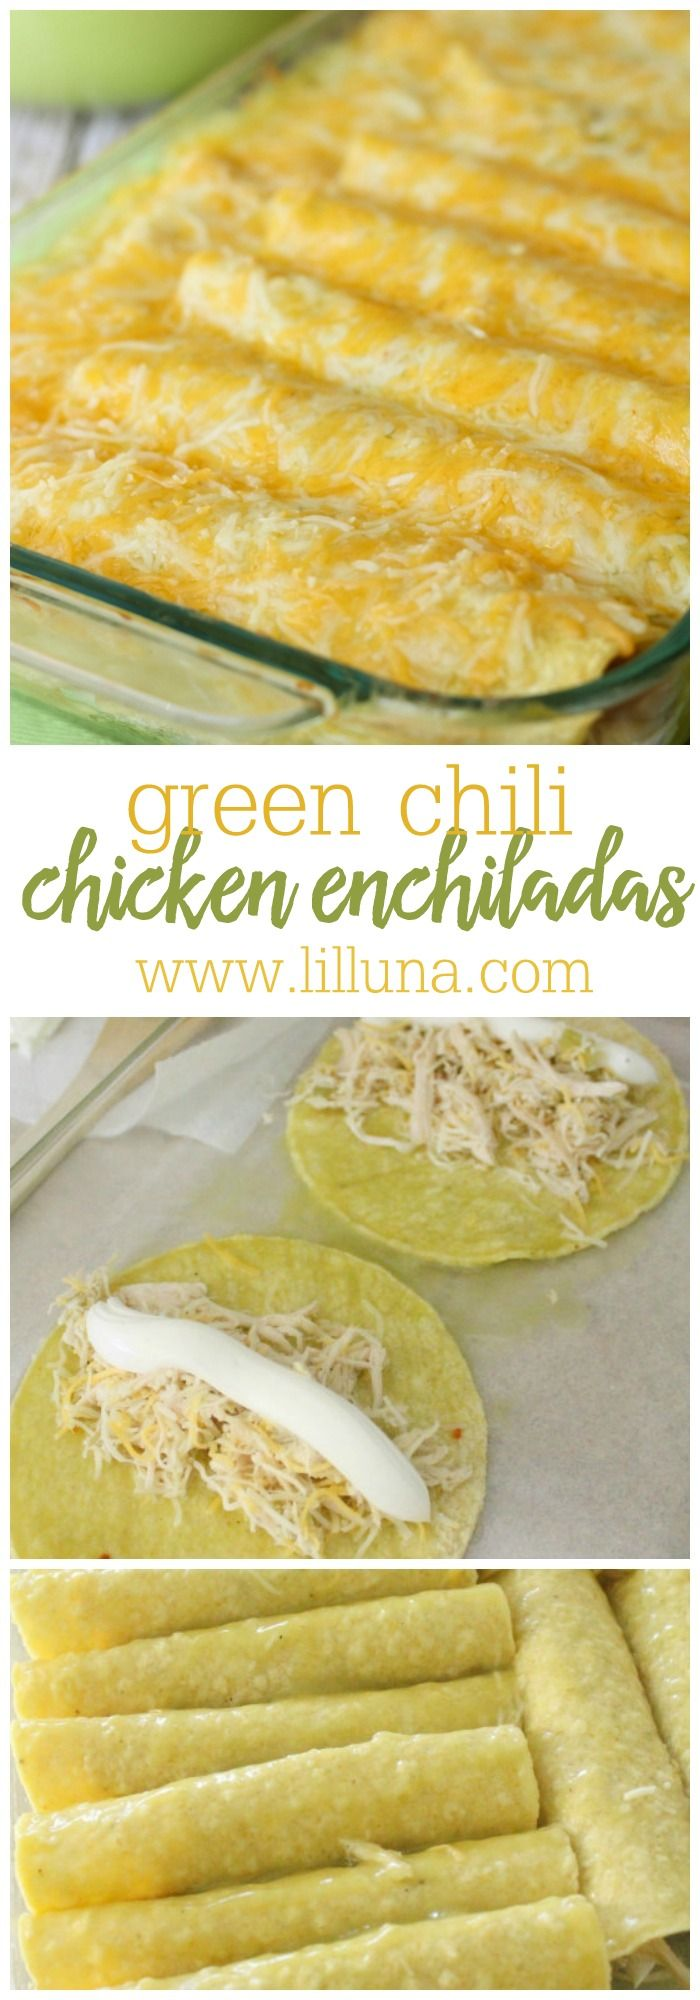 Las Palmas Chicken Enchiladas – such an easy and delicious recipe! Includes shredded chicken, green chili, sour cream, and cheese